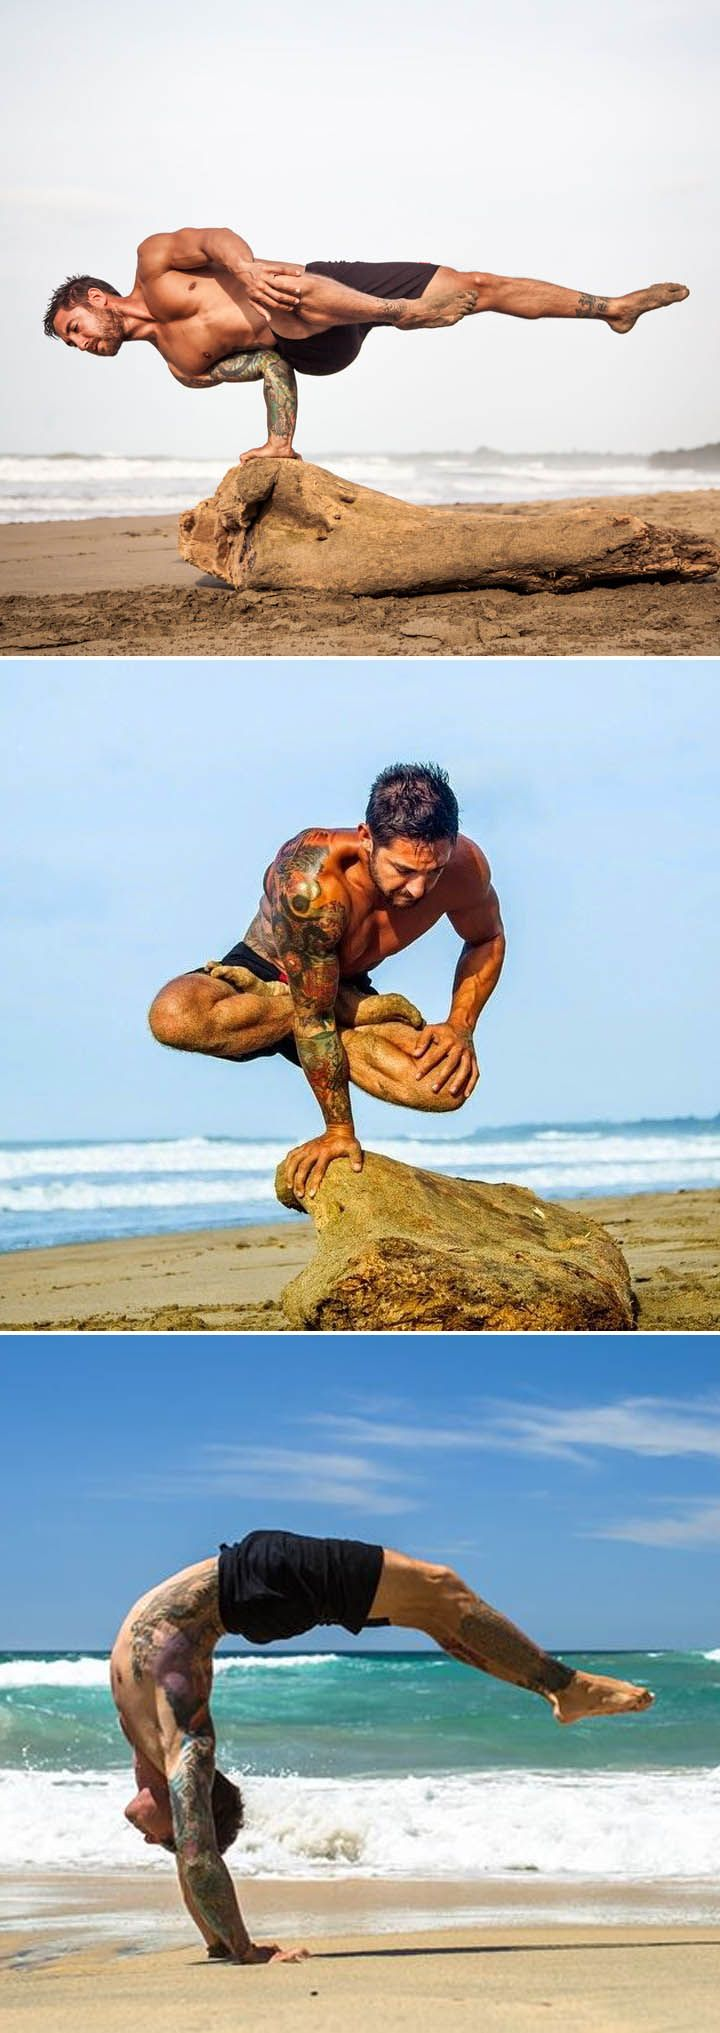 Dylan Werner Yoga http://dylanwerneryoga.com/ #yoga #fitness (Fitness Motivation Pictures)